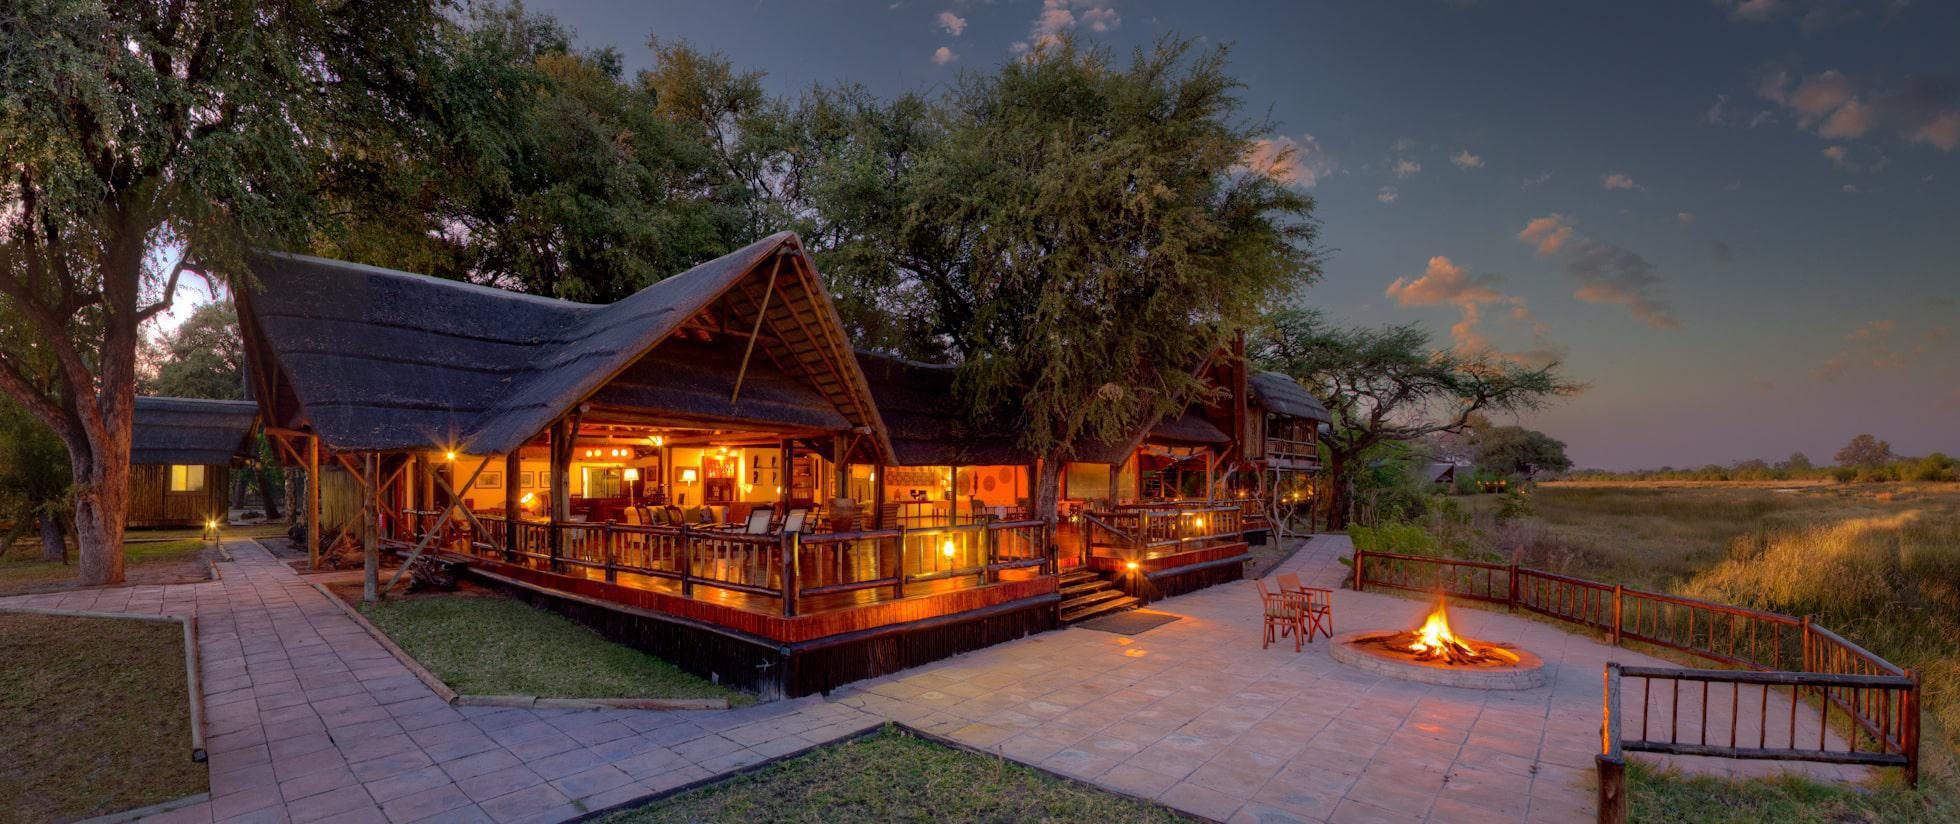 Khwai River Lodge by Orient-Express